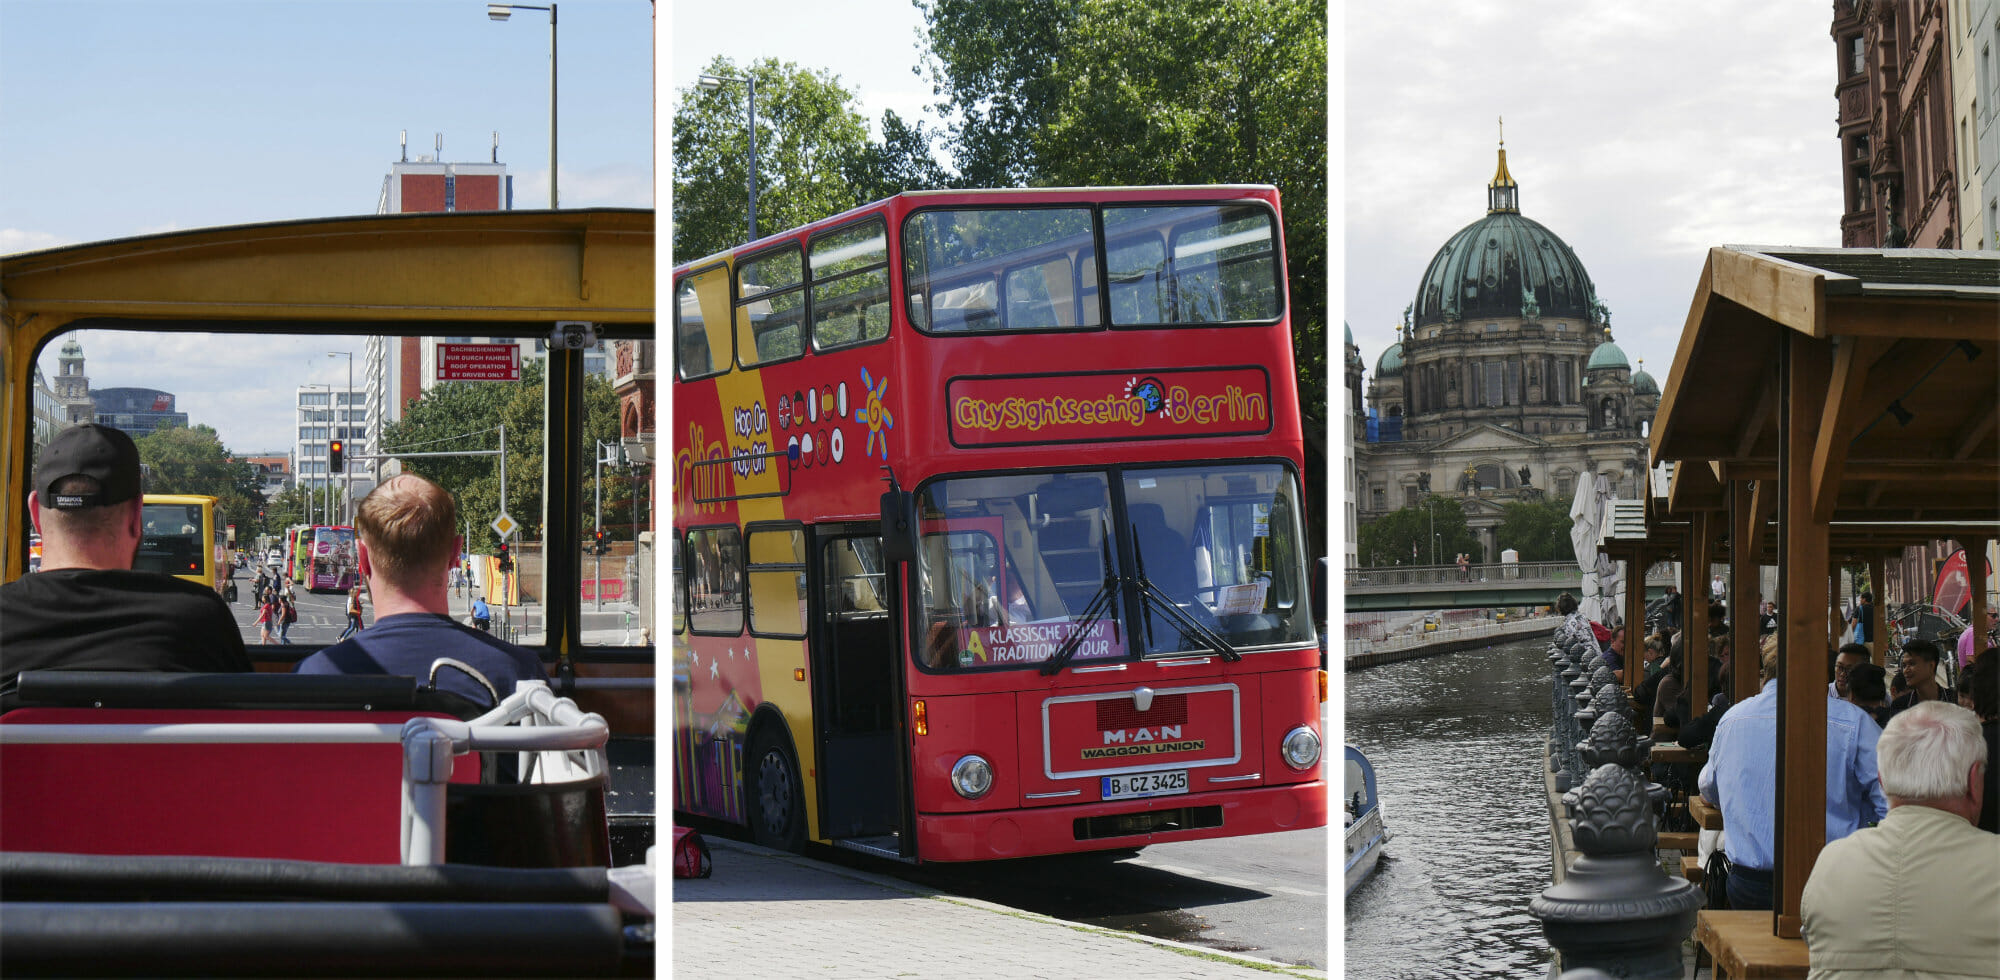 CitySightseeing Berlin Hop-On Hop-Off Bus Tour Review